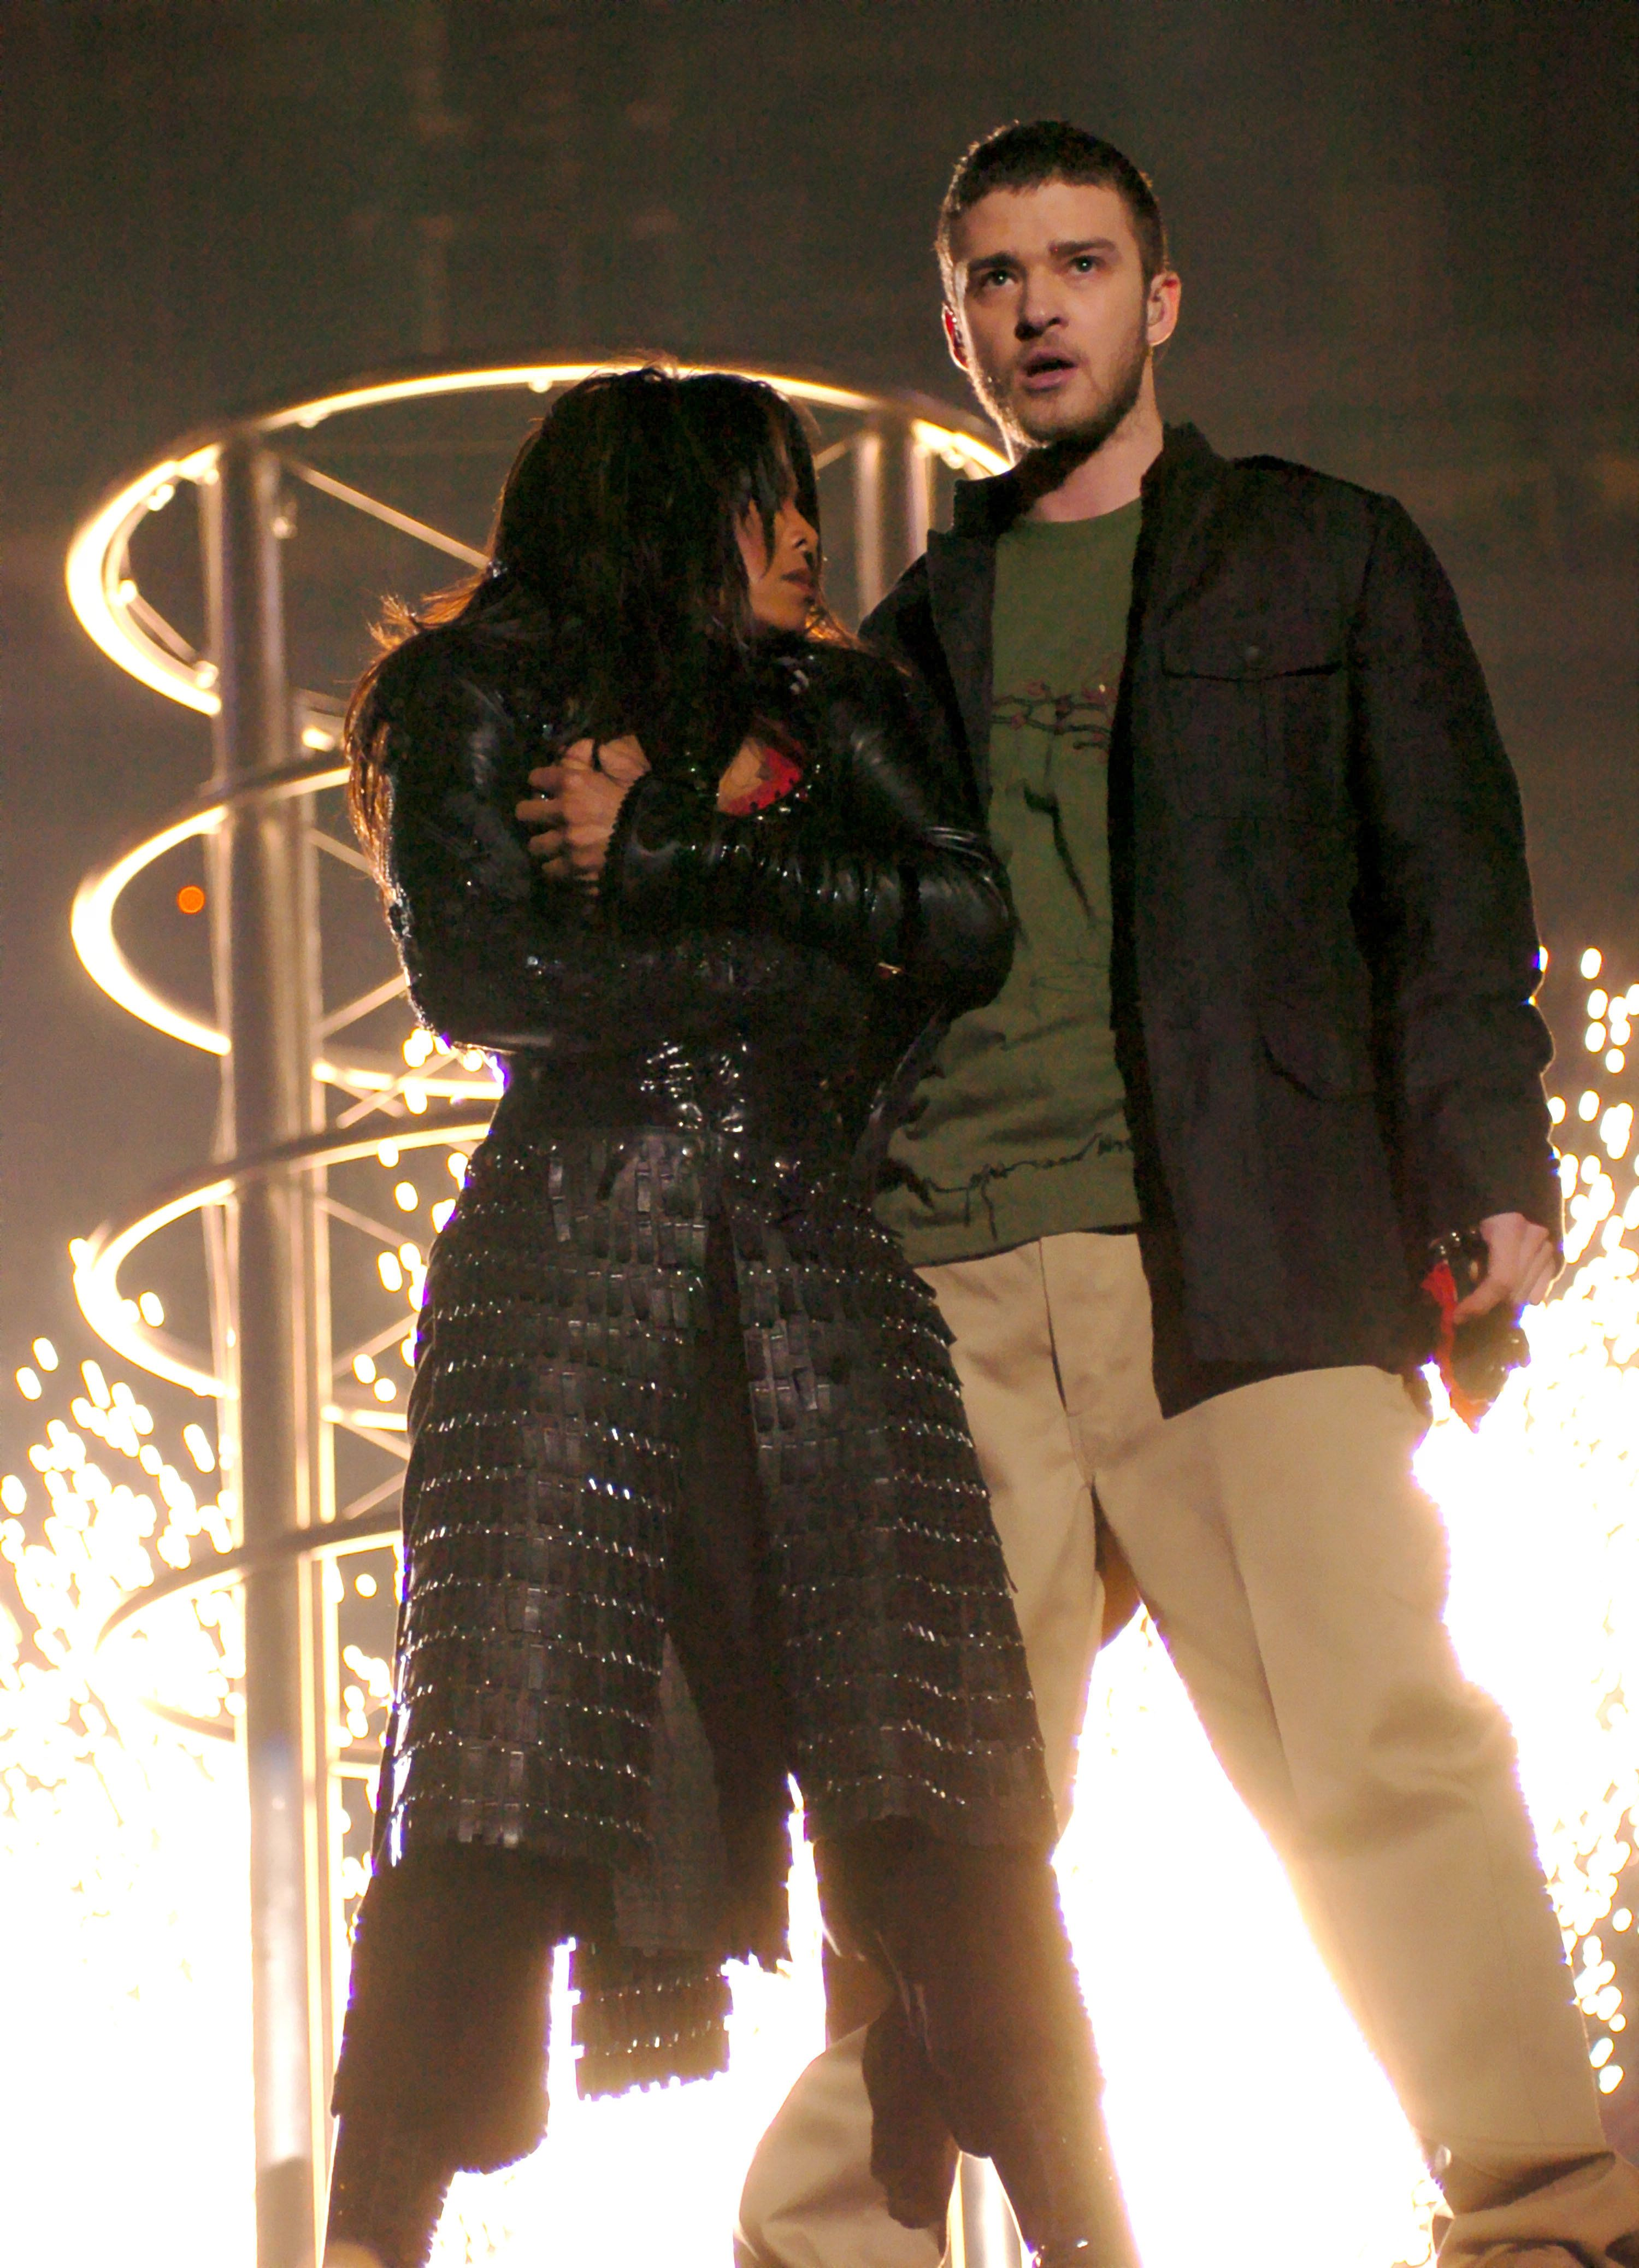 Janet Jackson and Justin Timberlake perform during the 2003 Super